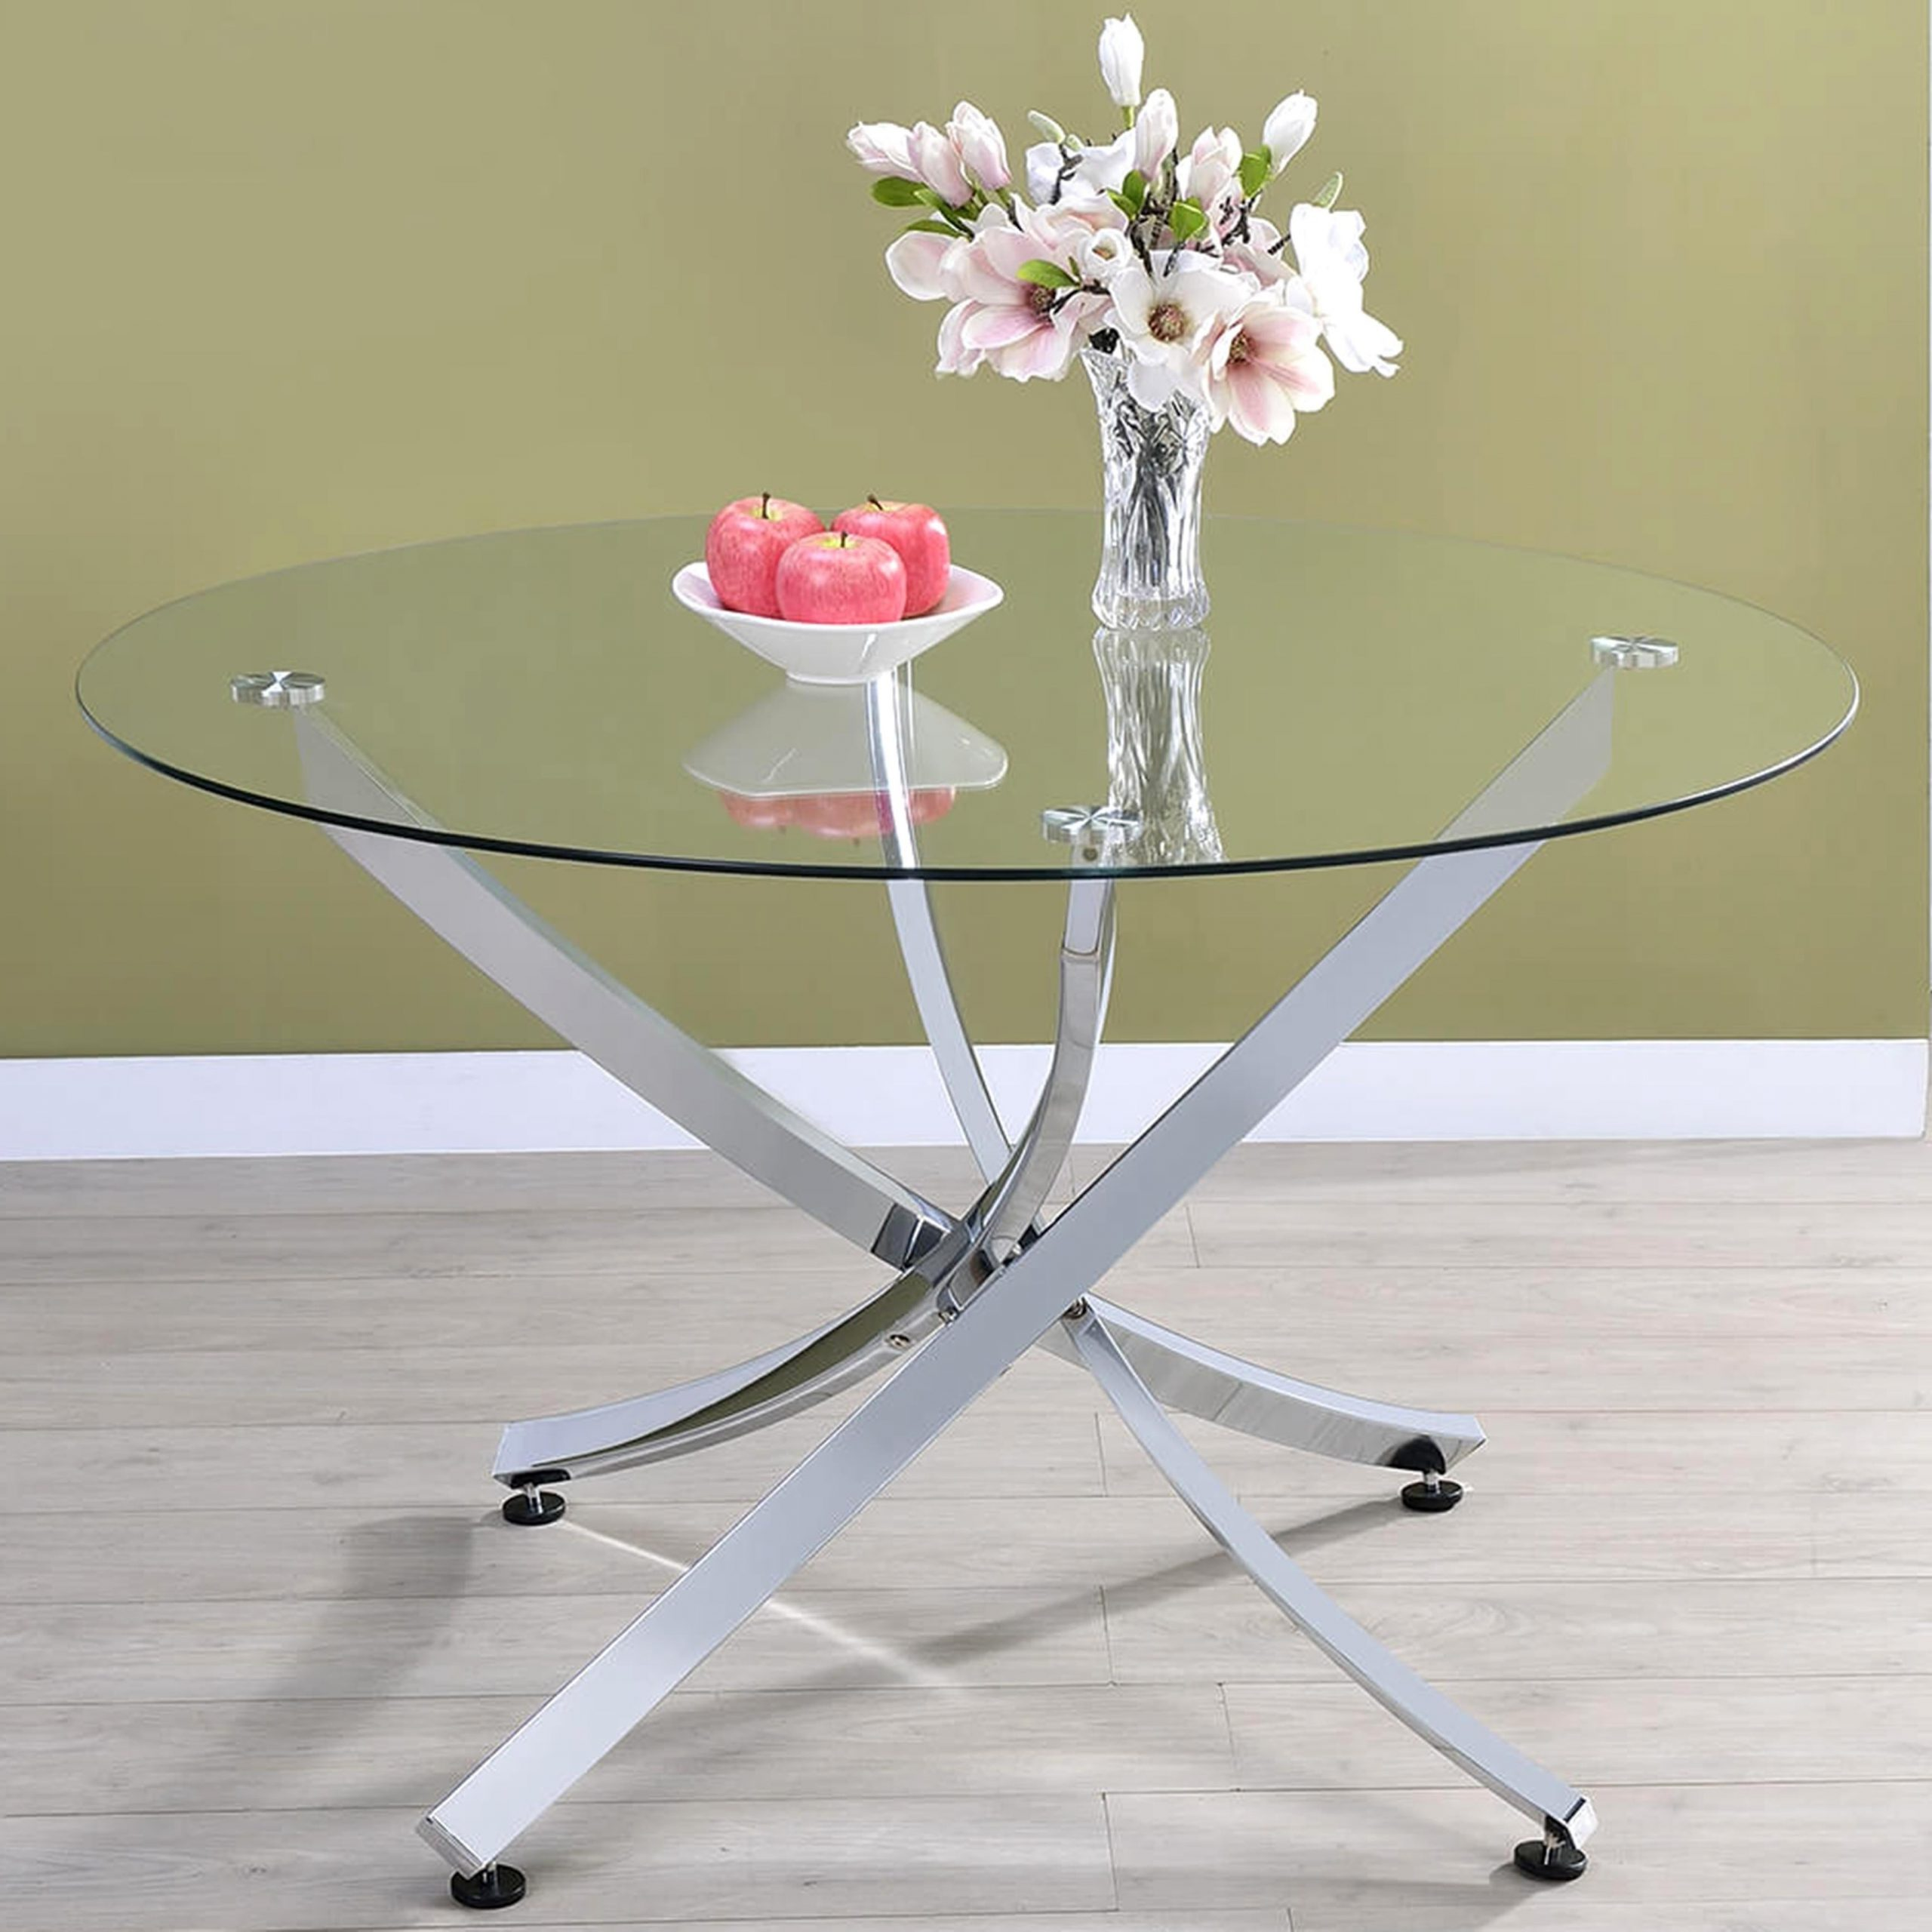 Chrome Dining Tables With Tempered Glass For Fashionable Modern Chrome Artistic Design Round Dining Table With Tempered Glass Top (View 15 of 30)